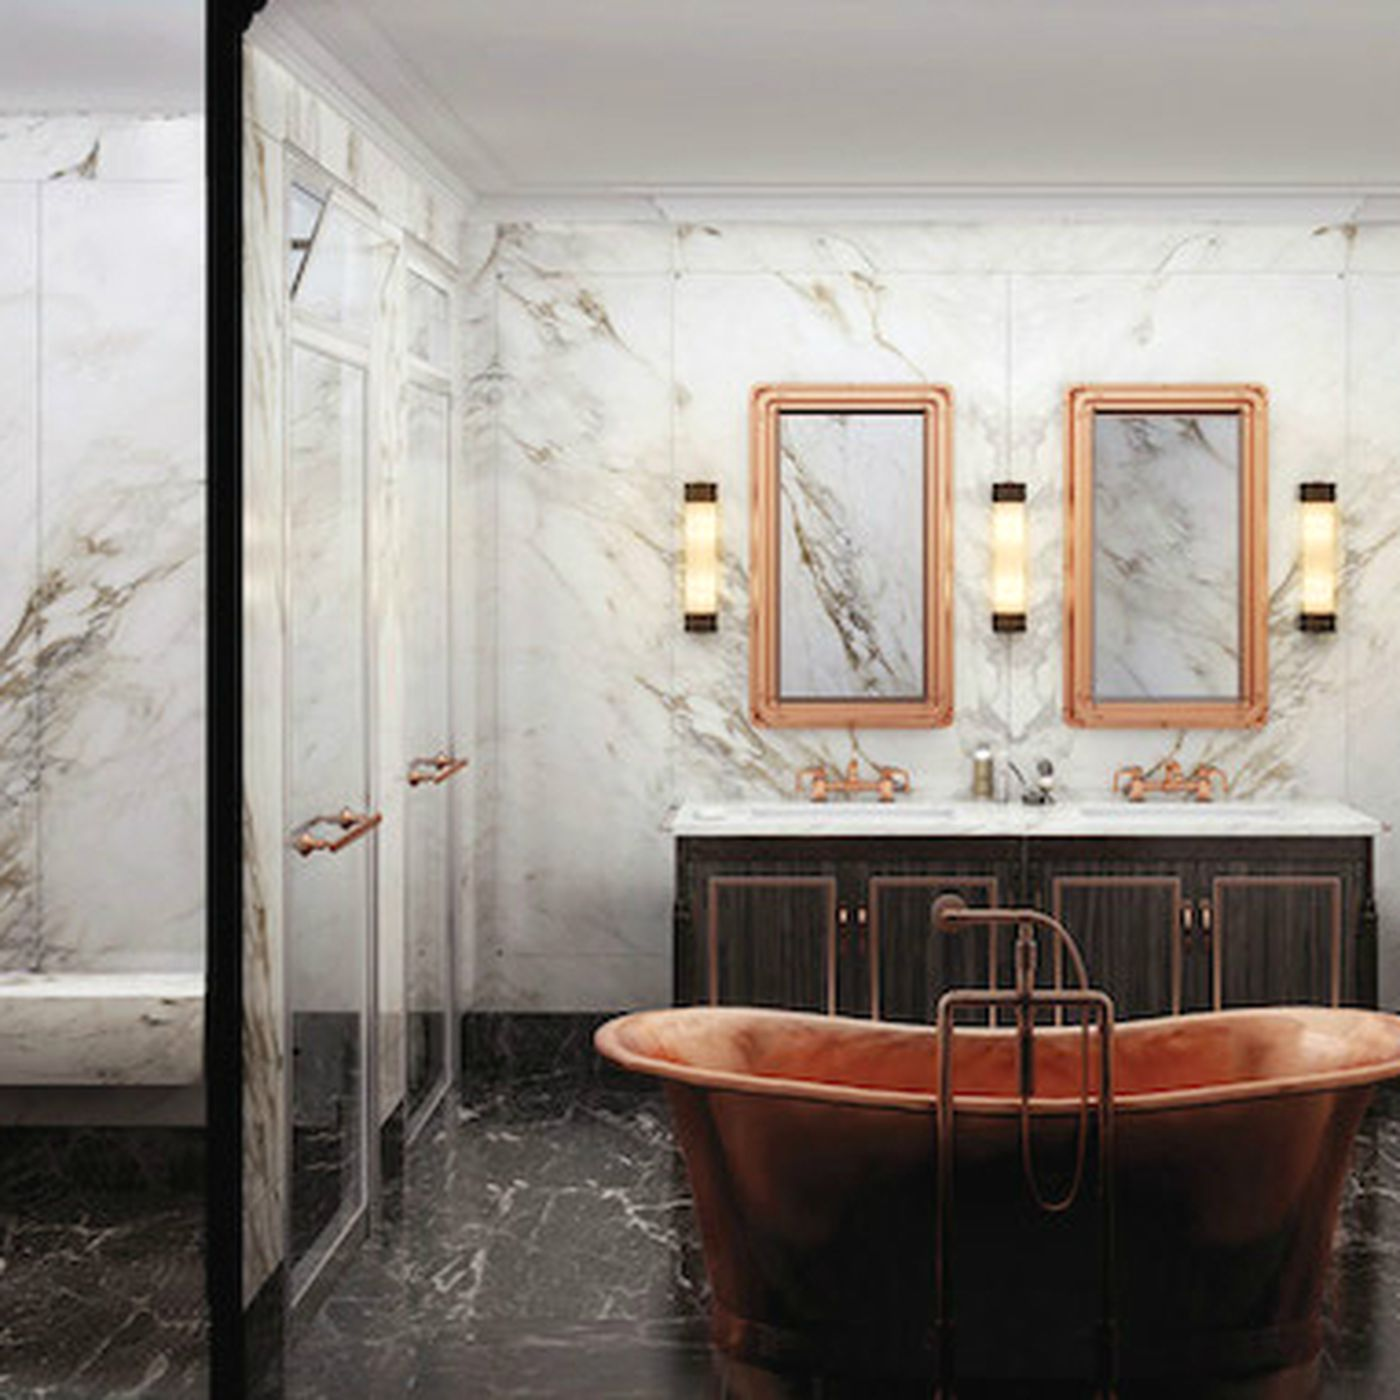 What Is Bath In French toilet room within the bathroom: the ultimate luxury or just